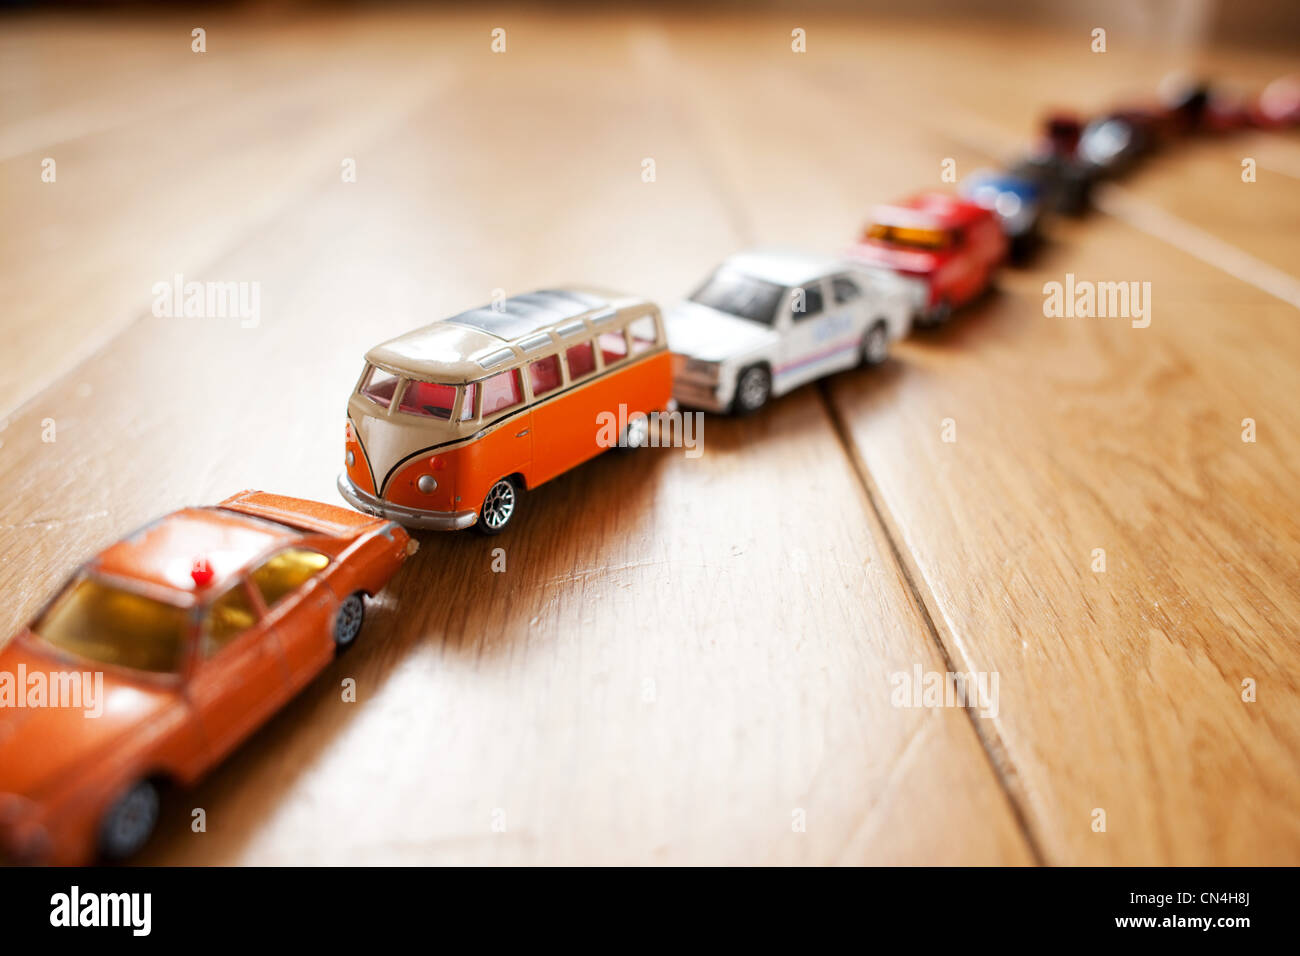 Queue of toy cars - Stock Image